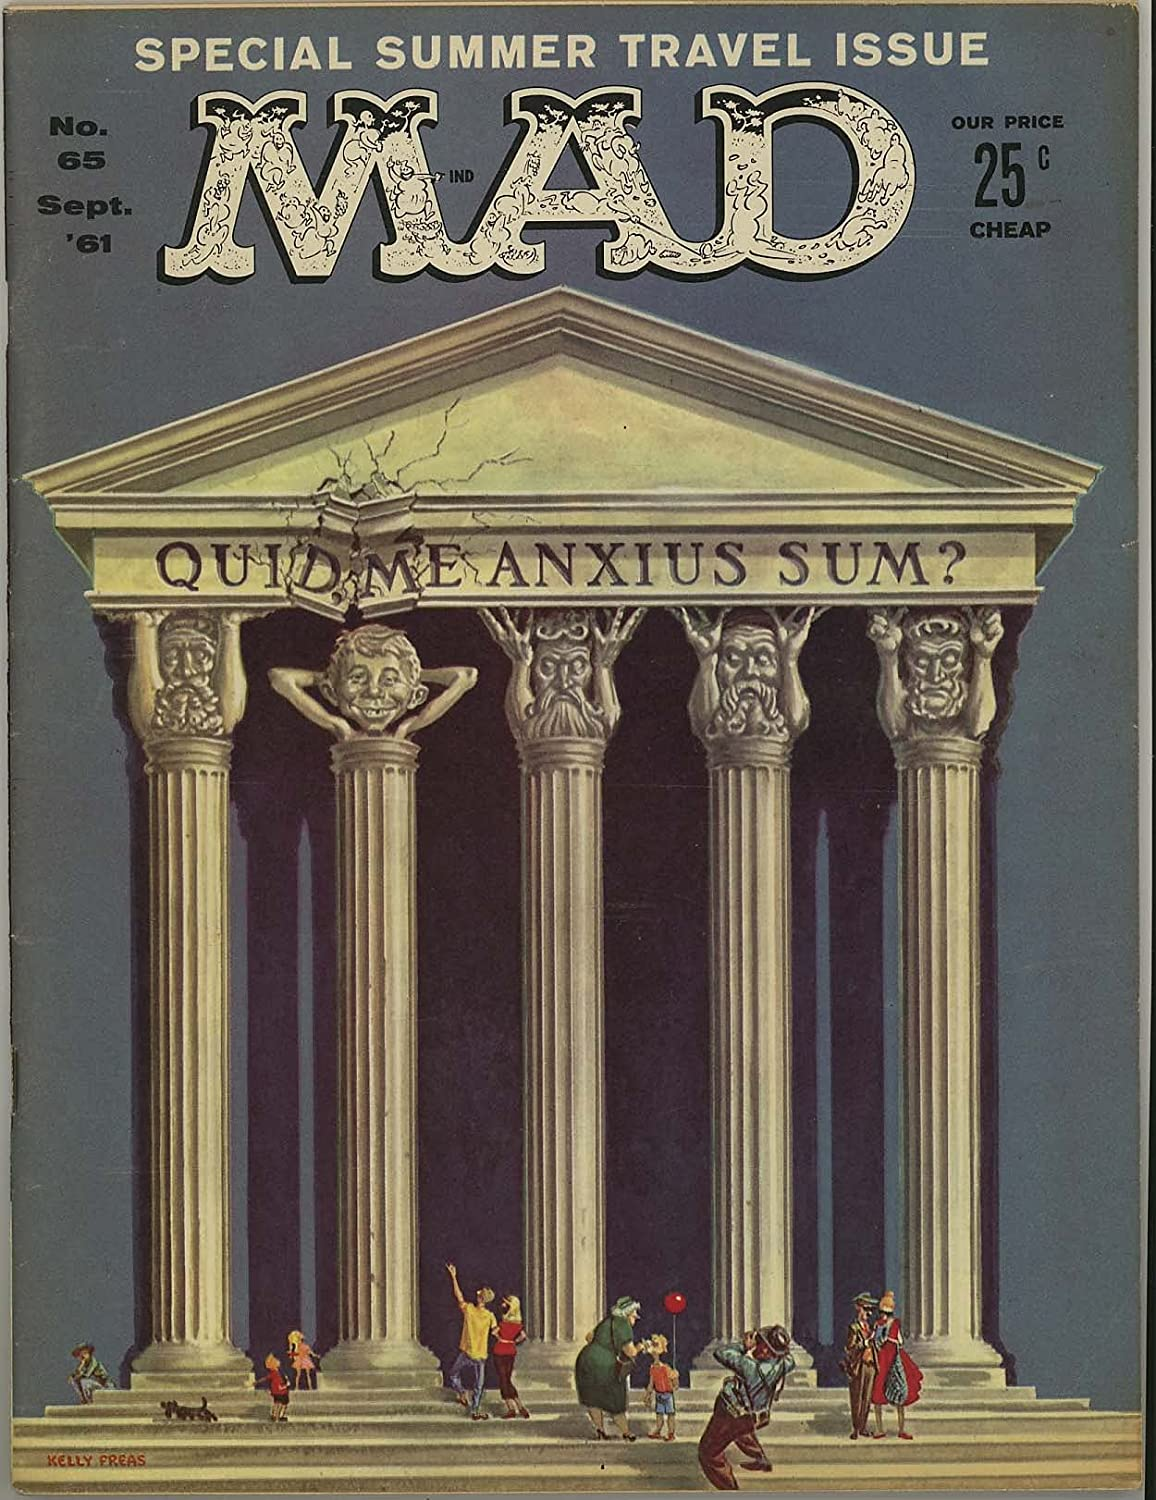 Mad Magazine No. 65 - Now free shipping September 1961 Max 74% OFF